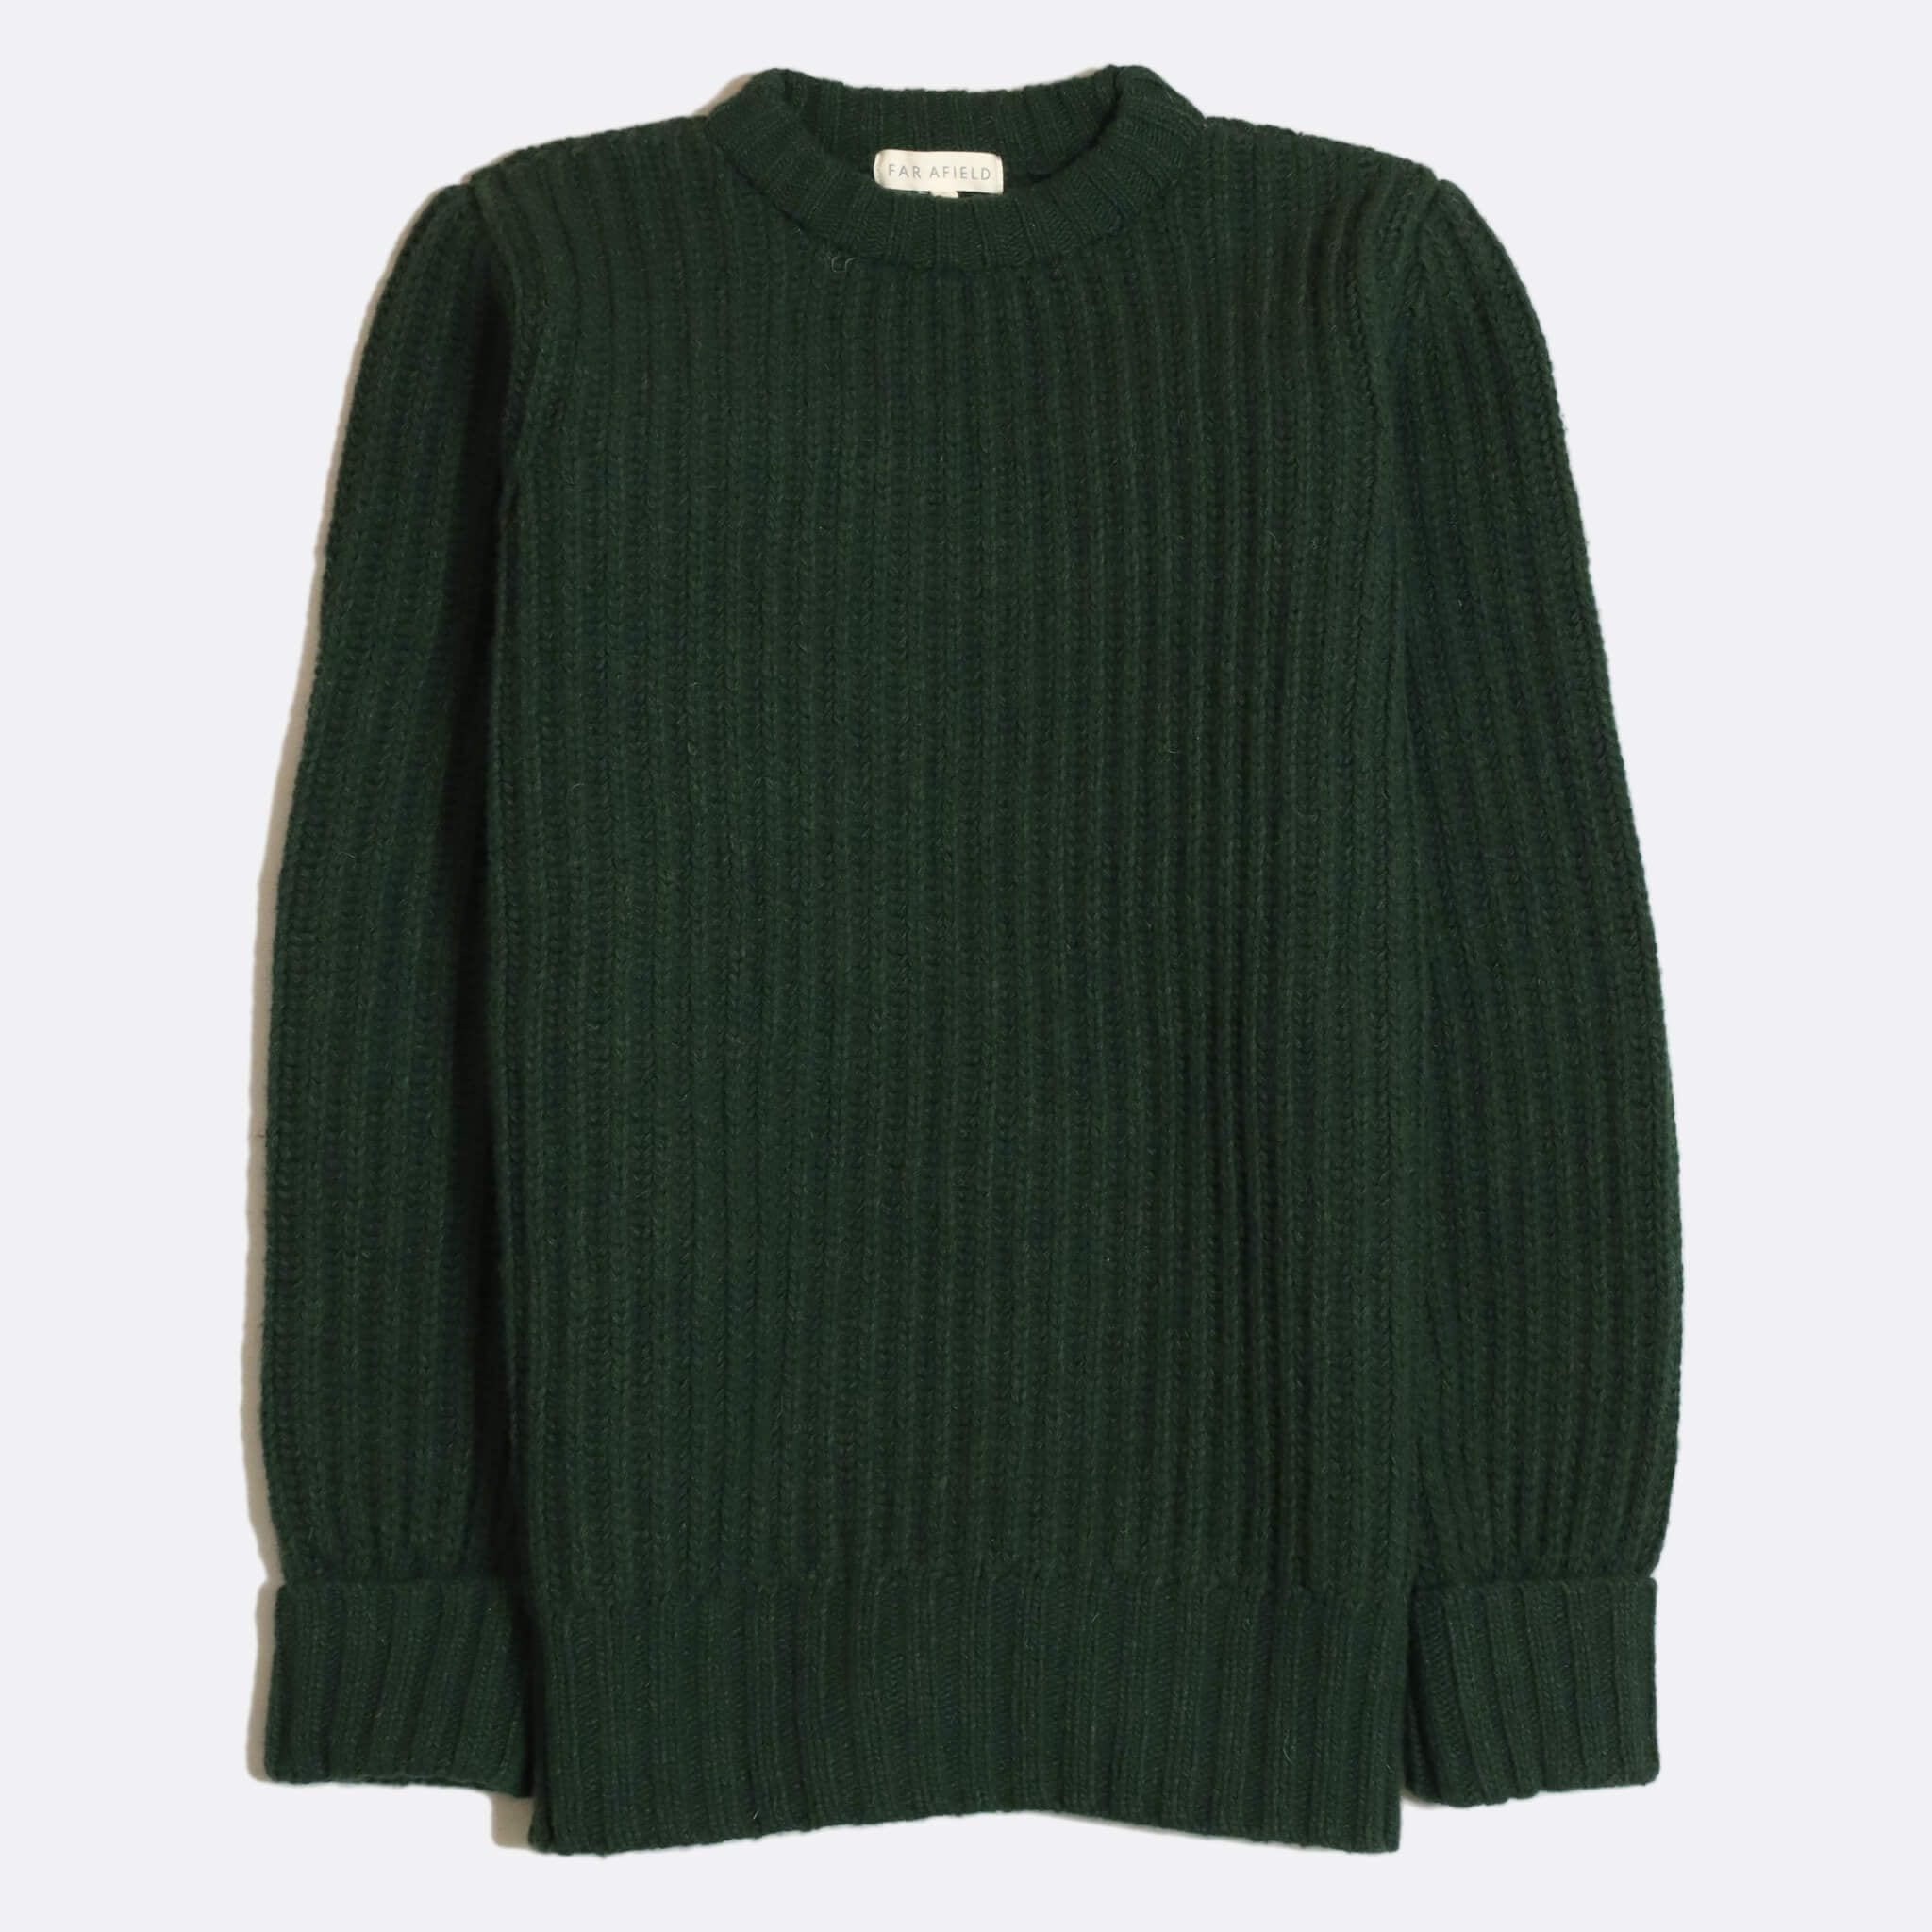 Far Afield Tanner Ribbed Knit a Green Fine Wool Blend Fabric Fisherman Jumper Casual